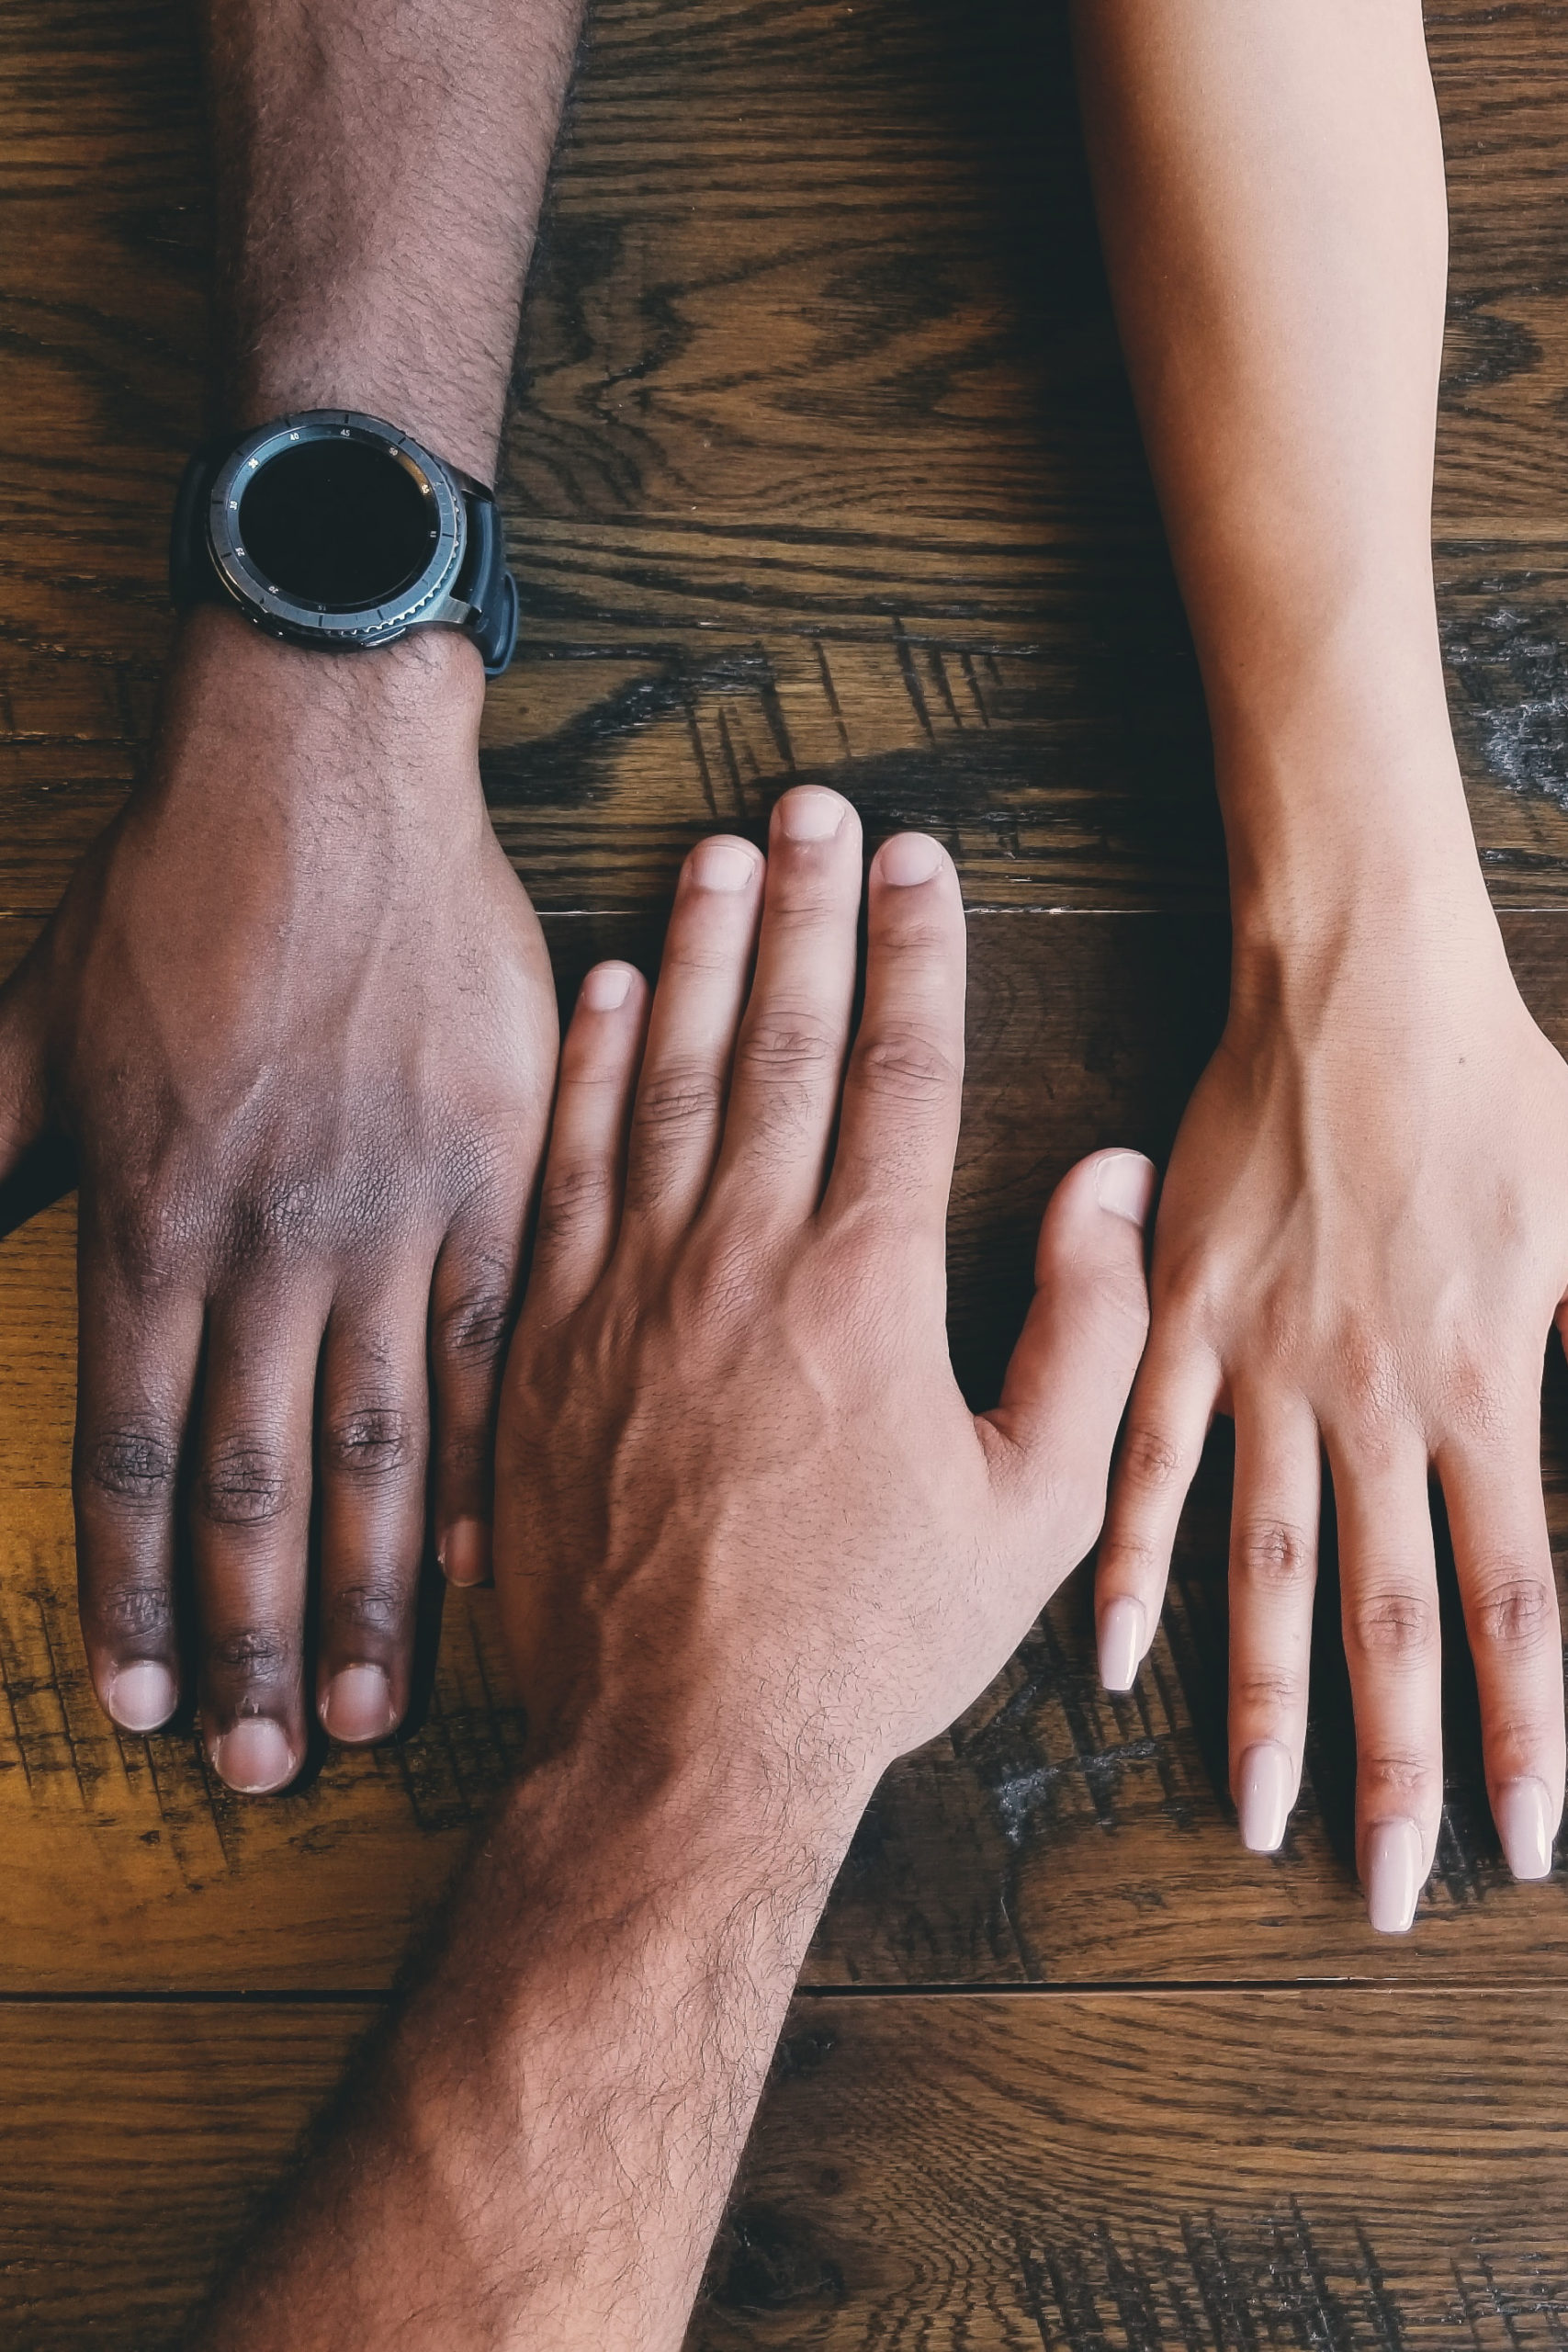 three hands of different people faced down on a wooden table